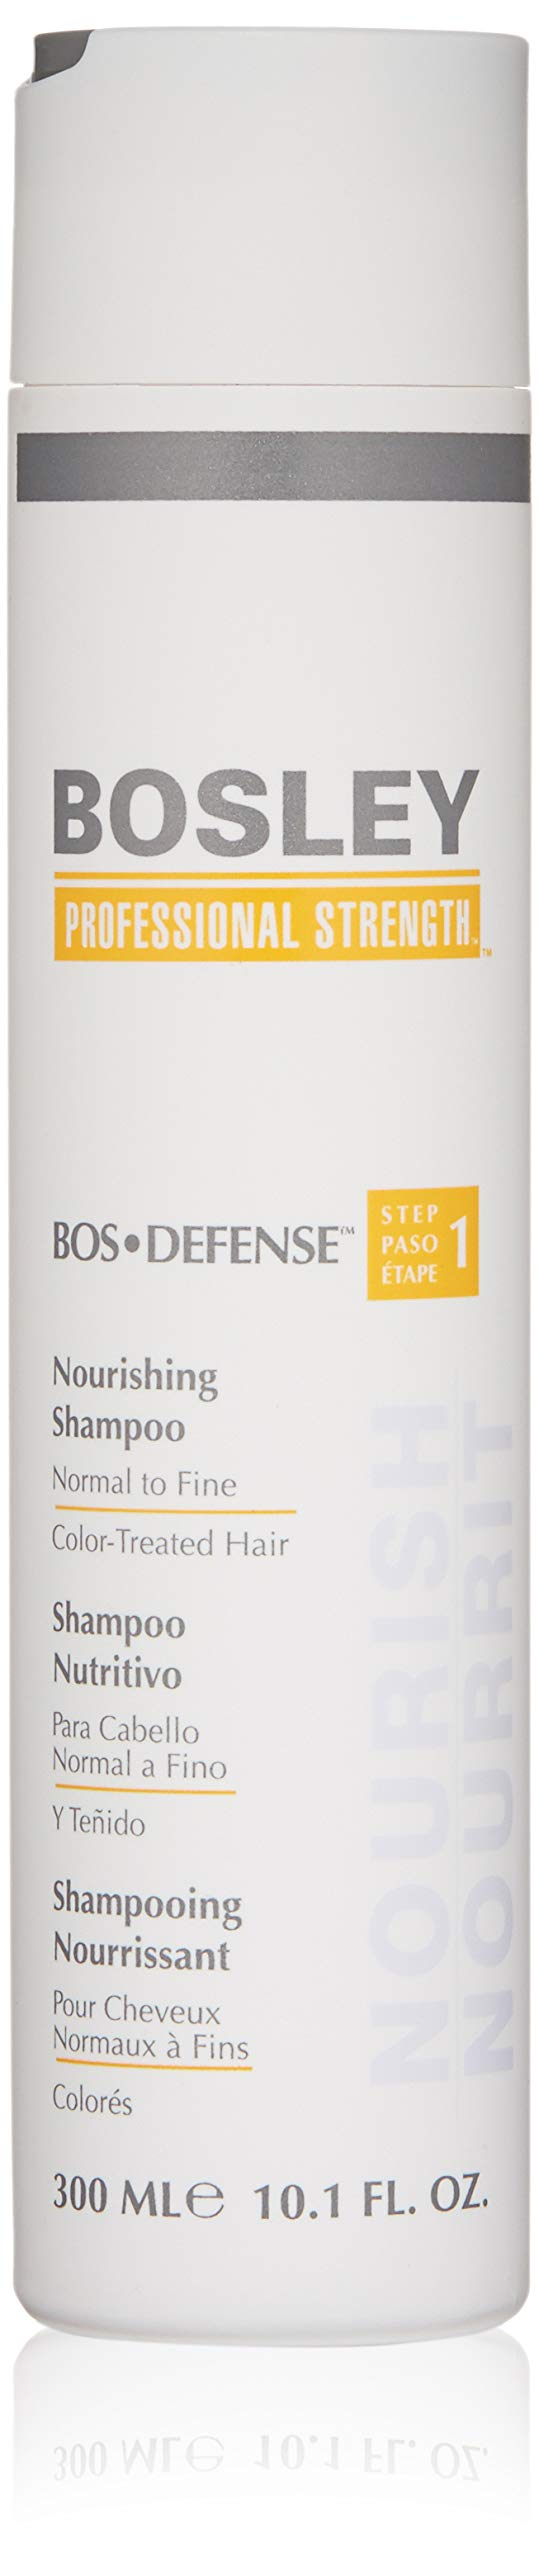 Bosley Bosley:bos-defense Nourishing Shampoo for Color-treated Hair 10.1oz, 10.1 Ounce by Bosley Professional Strength